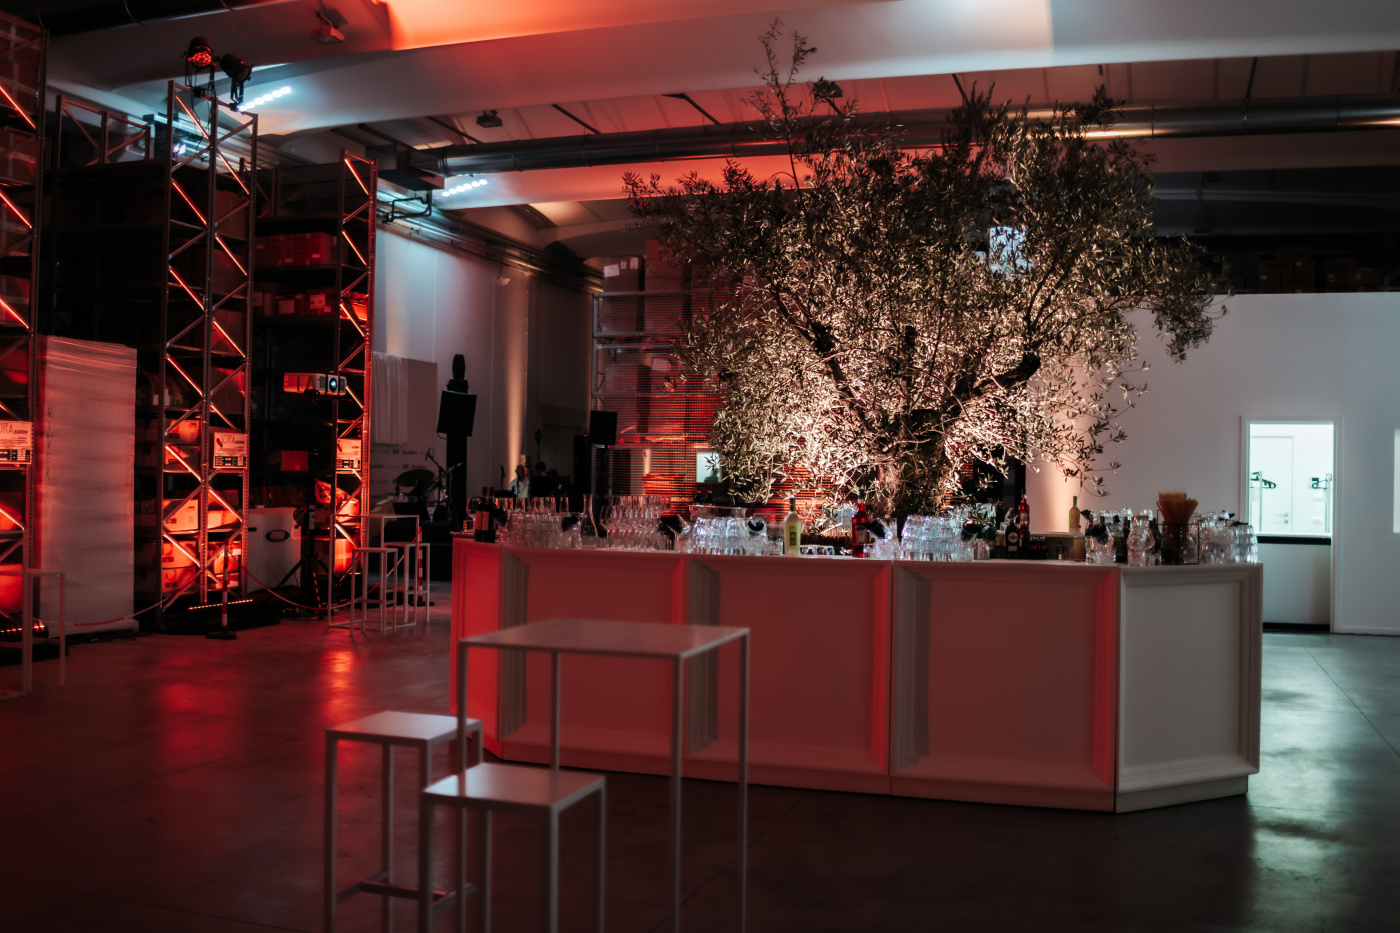 Central white bar station with big olive tree